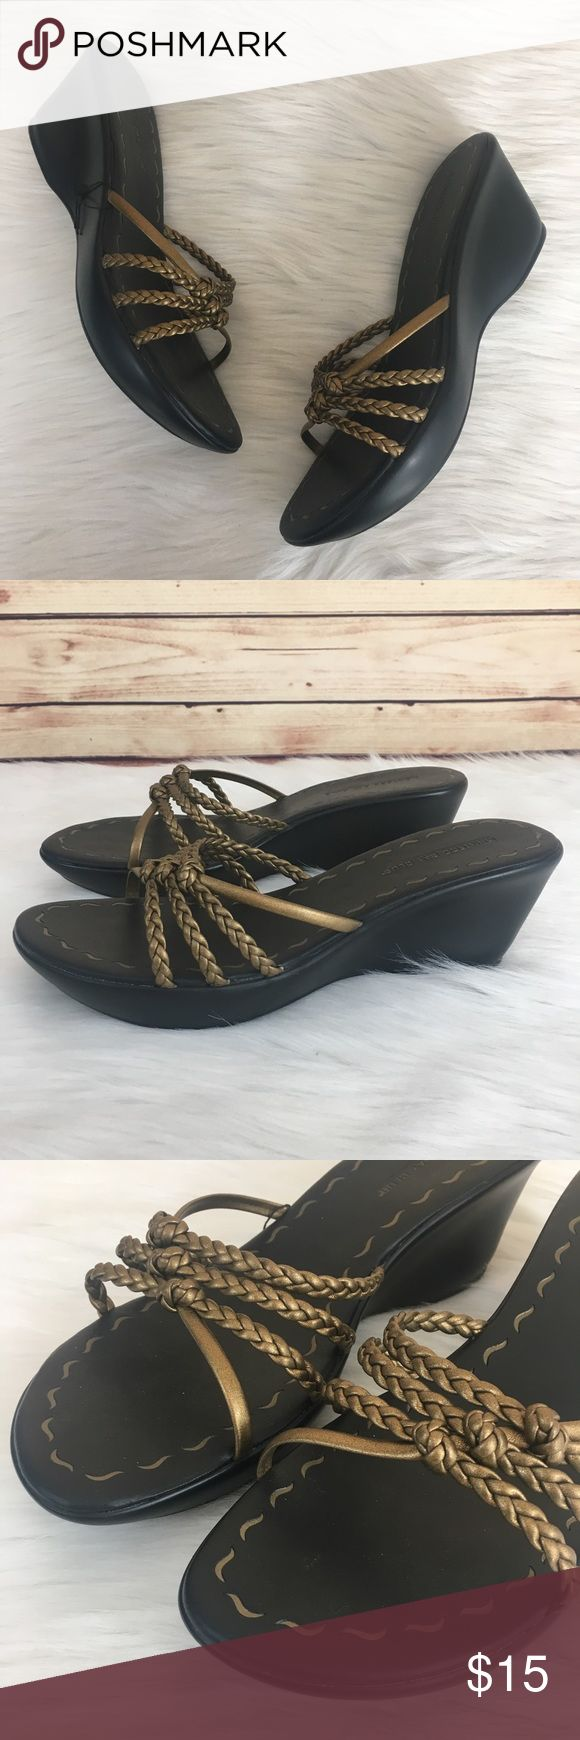 """Montego Bay Club wedge sandals ✨Newly listed items are priced to move.. please help me clear out my actual closet 😉  Preloved / Montego Bay Club wedge sandals Size 11, fits true to size Slip on closure Wedge height: 3"""" Platform height: 1"""" *Shoes show wear (may have dirt, scuffs, scratches, rubbing, discoloration) *Comes without shoebox but will be packaged in a usps shipping box.  ✨Build a bundle with all your likes and use the automatic bundle discount -or- make me a bundle offer✨ Montego…"""